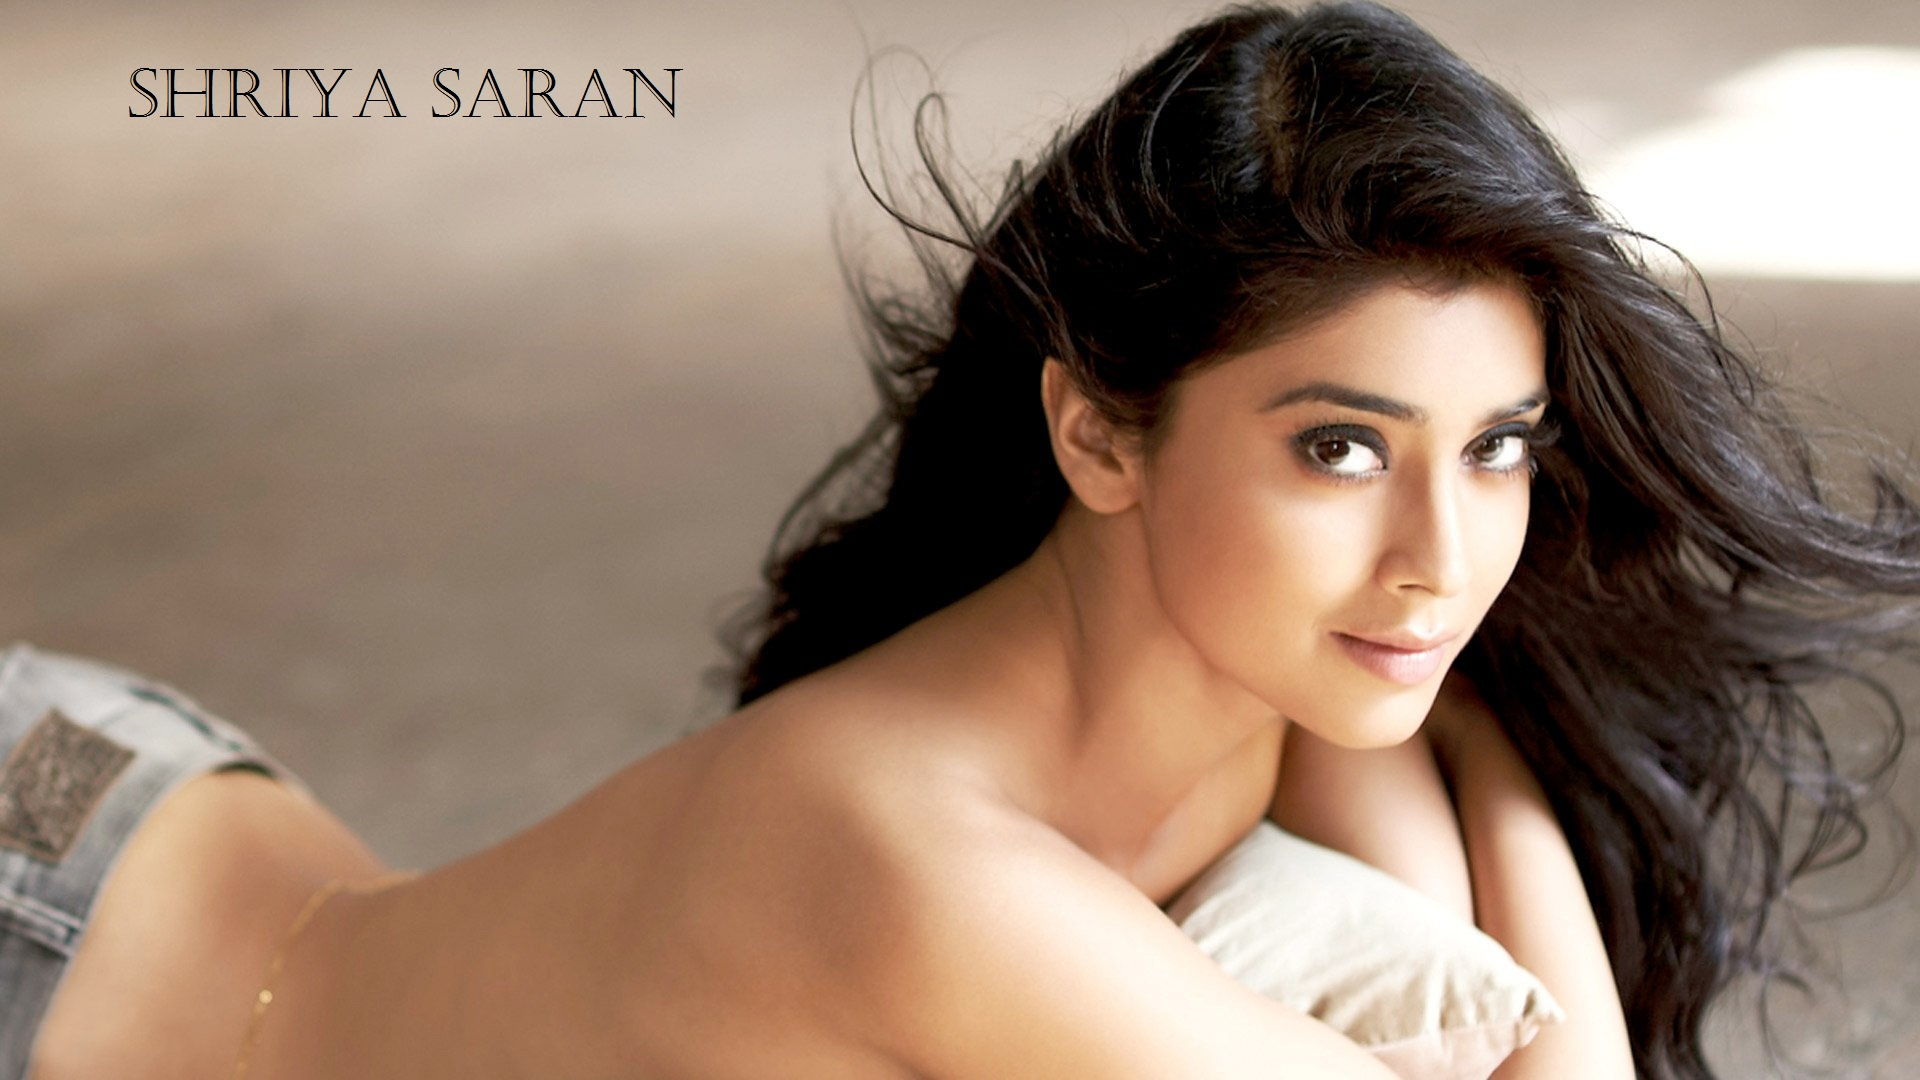 download shriya saran hd wallpaper | techpandey - a technology blog